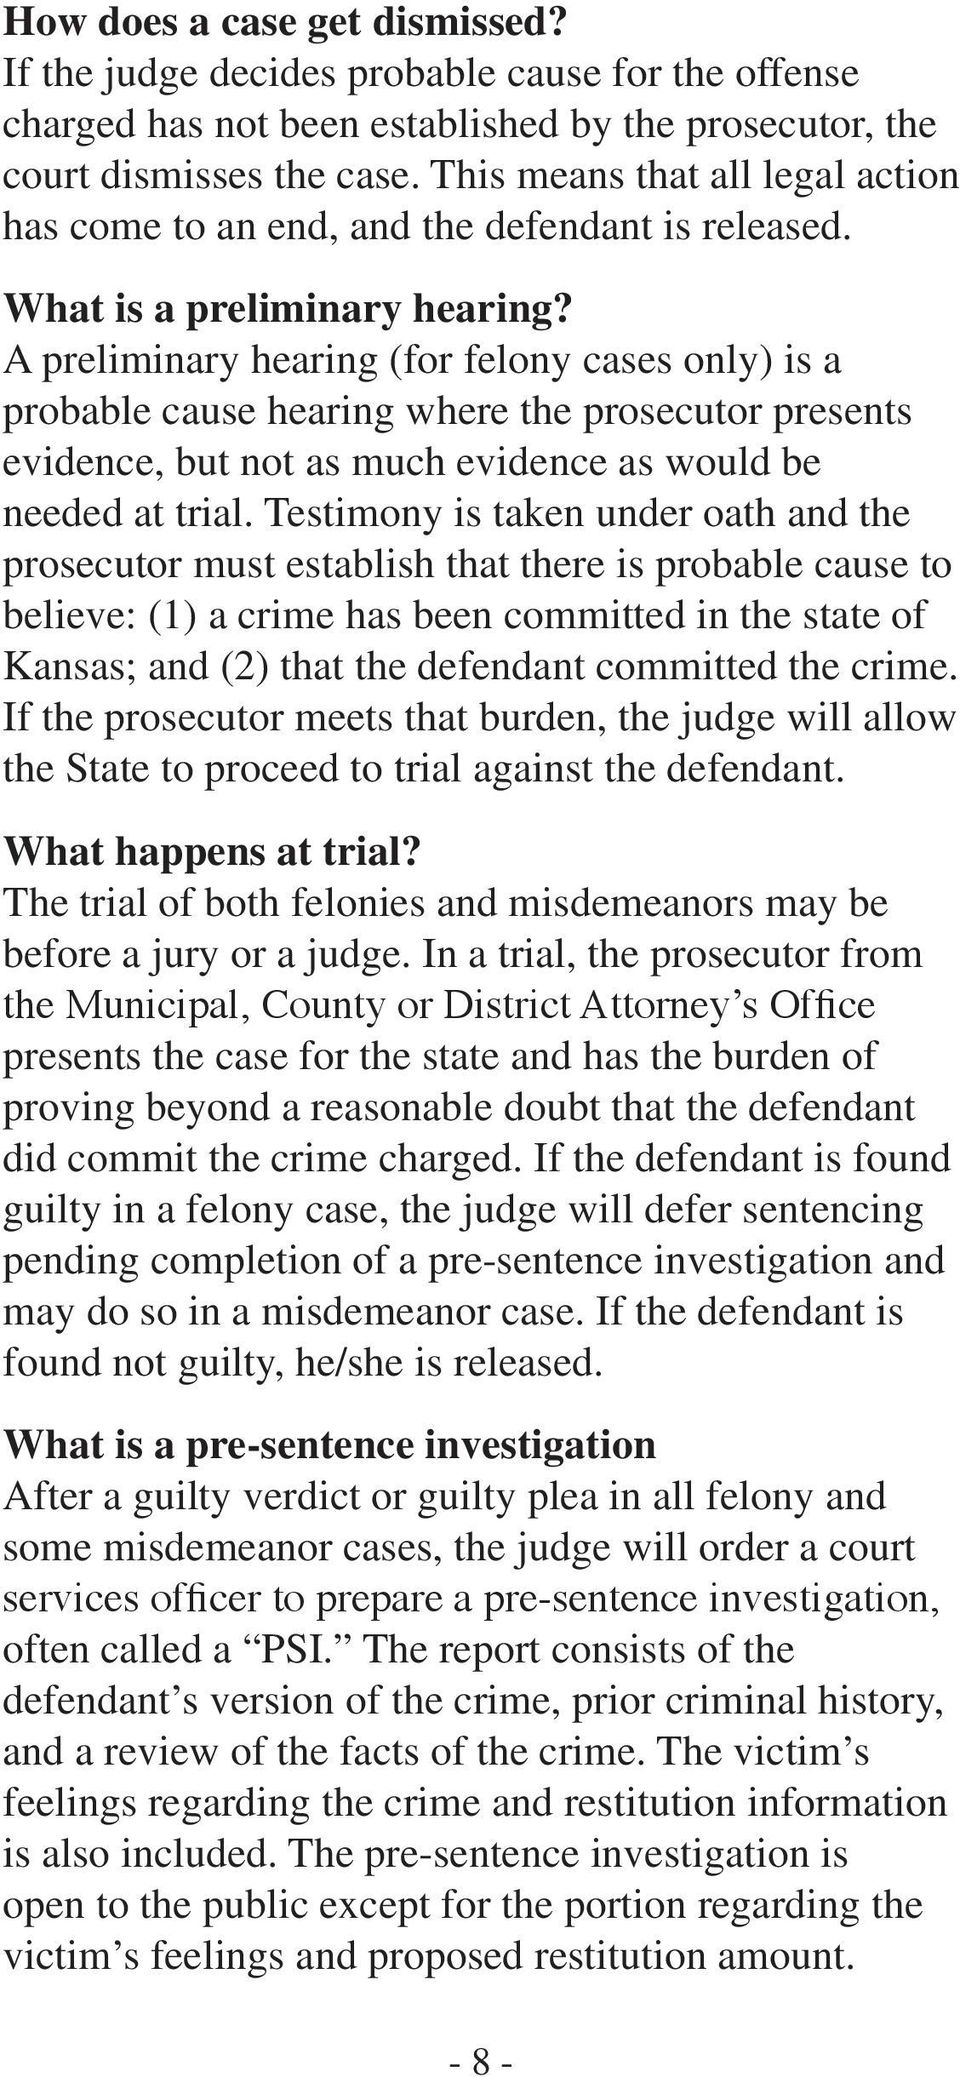 A preliminary hearing (for felony cases only) is a probable cause hearing where the prosecutor presents evidence, but not as much evidence as would be needed at trial.